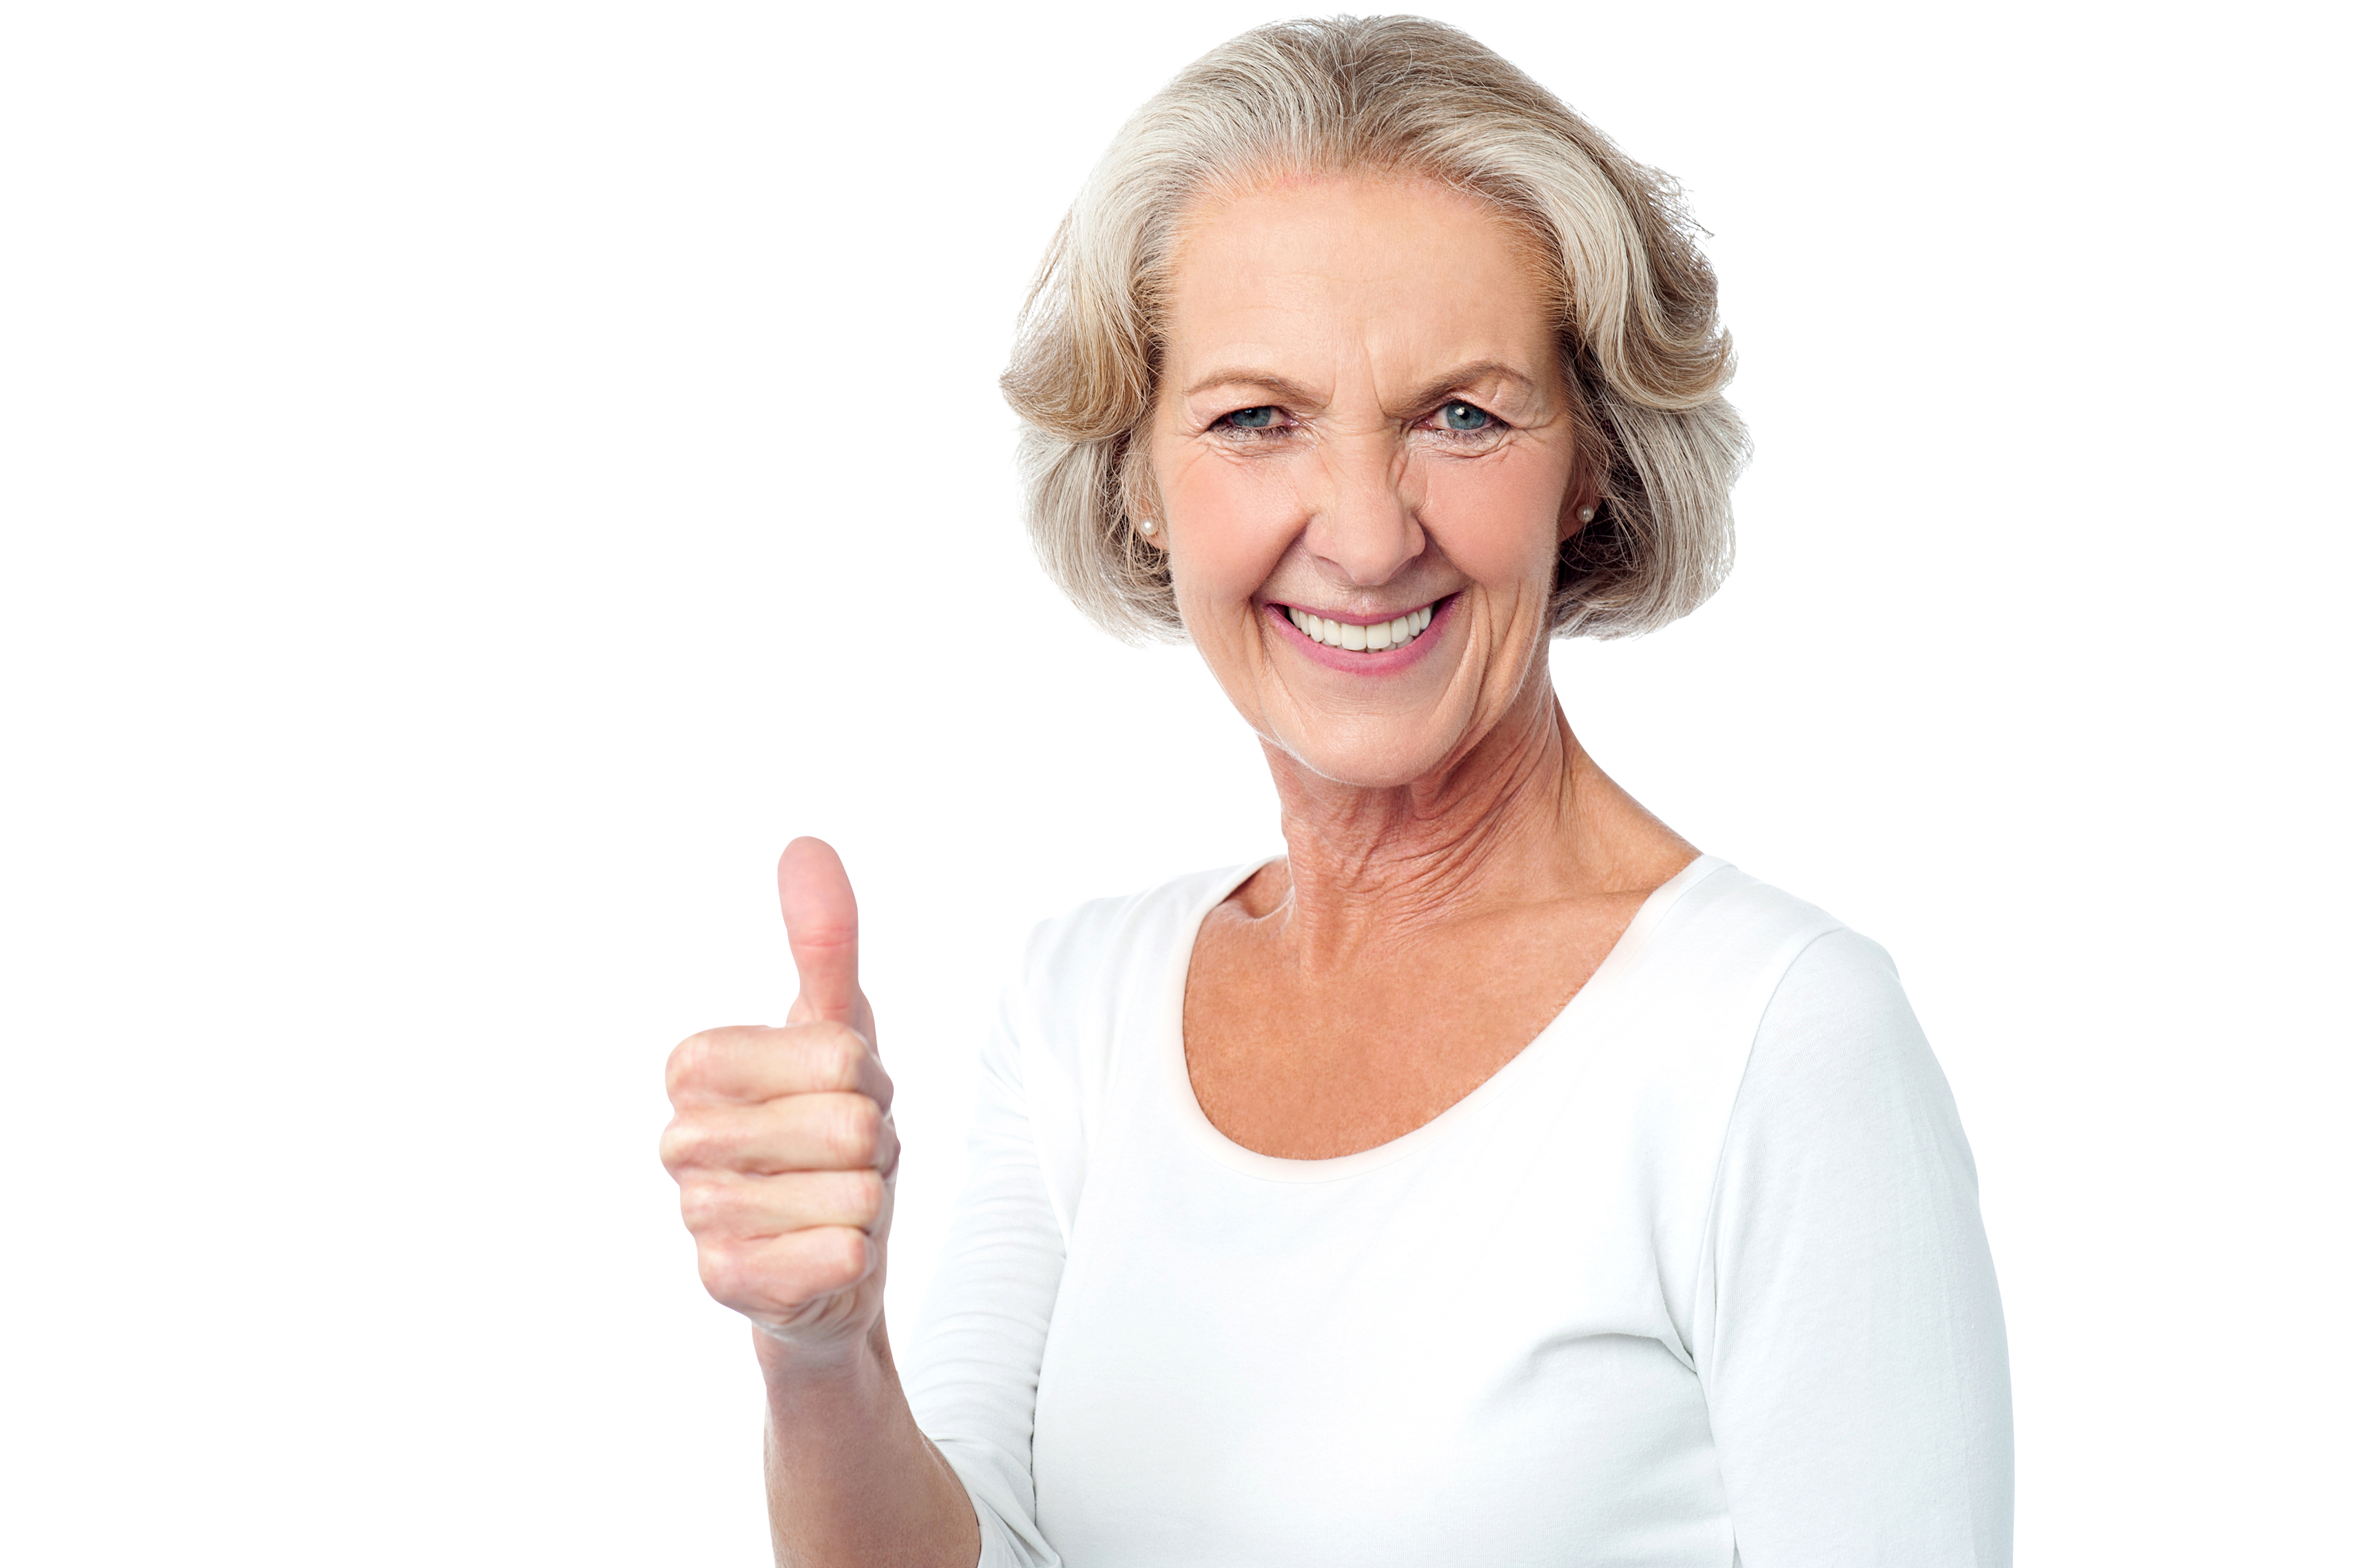 Old Women PNG Image